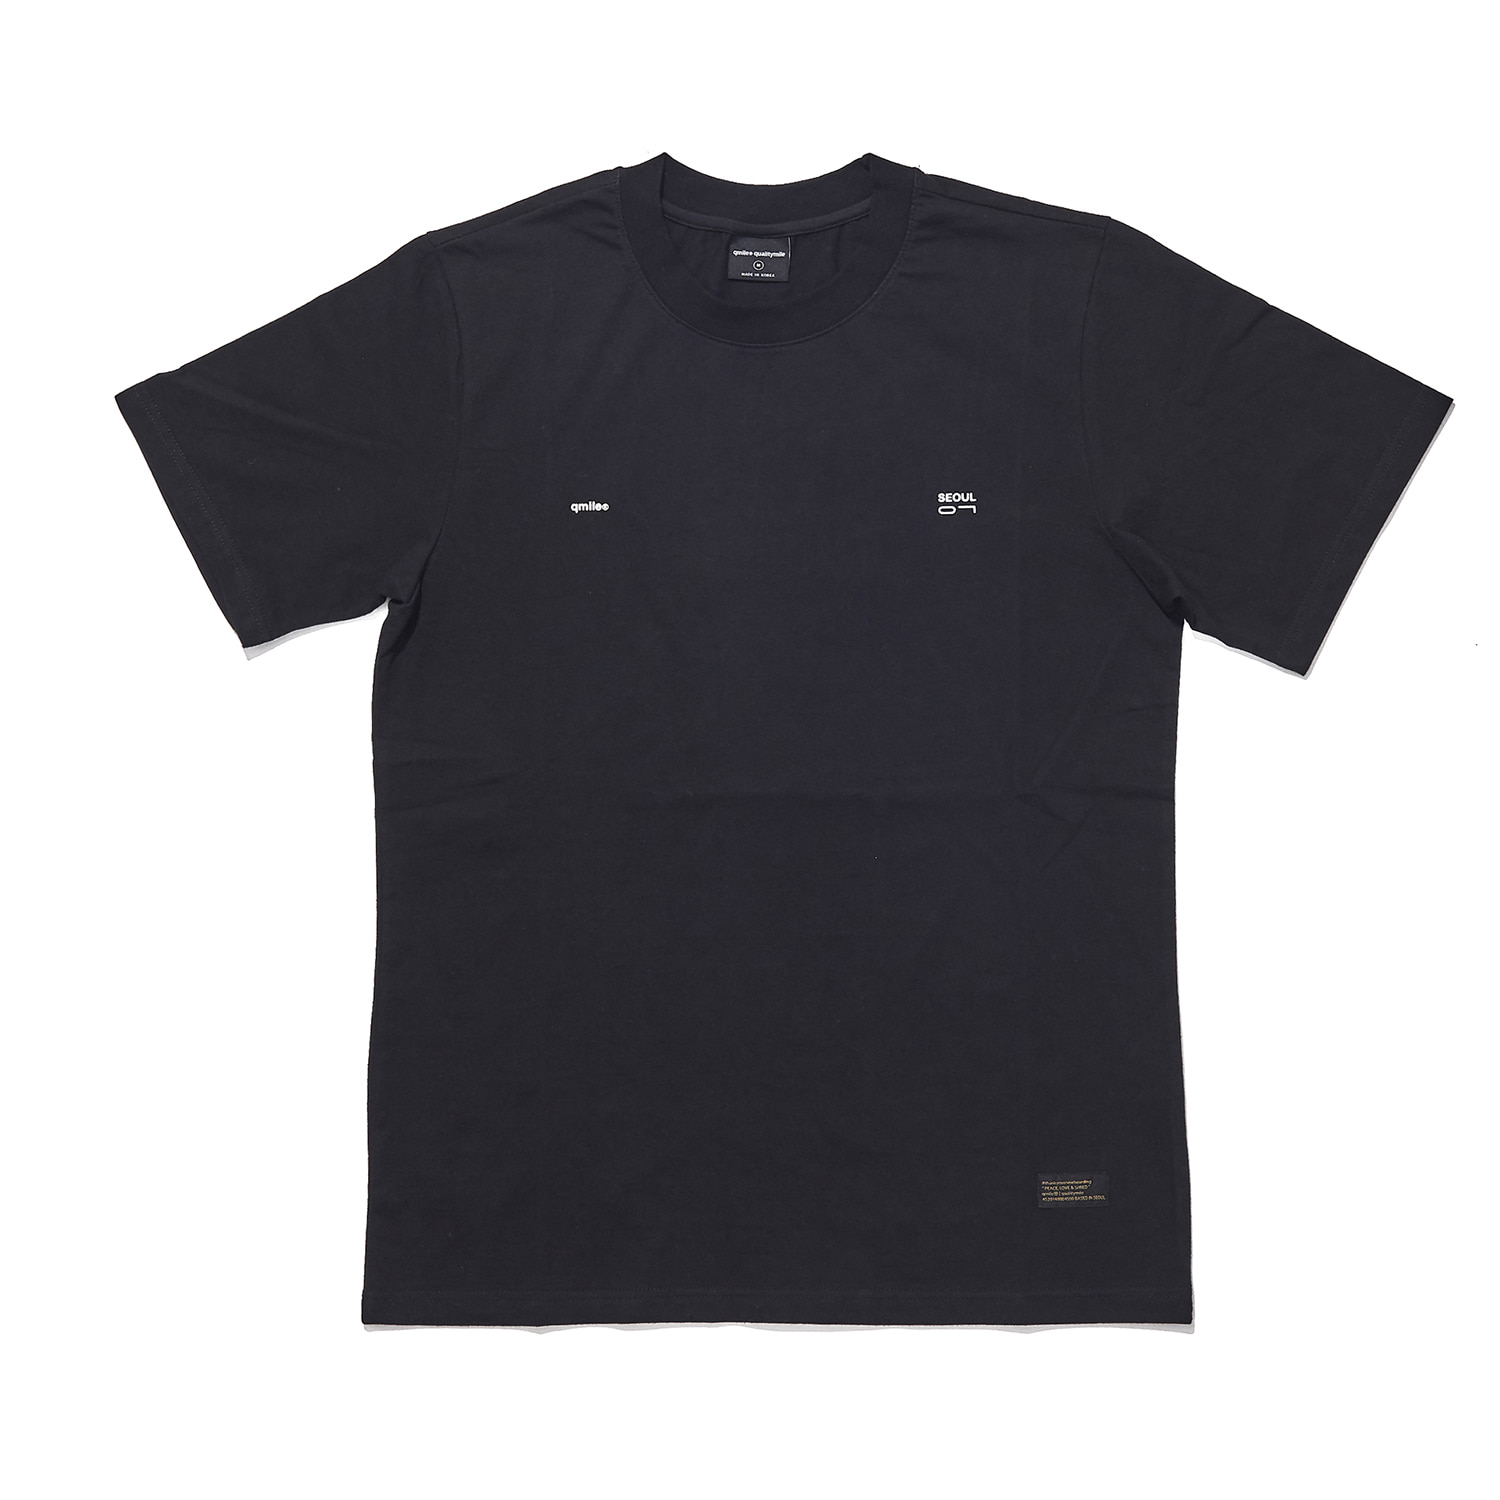 QS07 (qmile seoul 07) short sleeve black